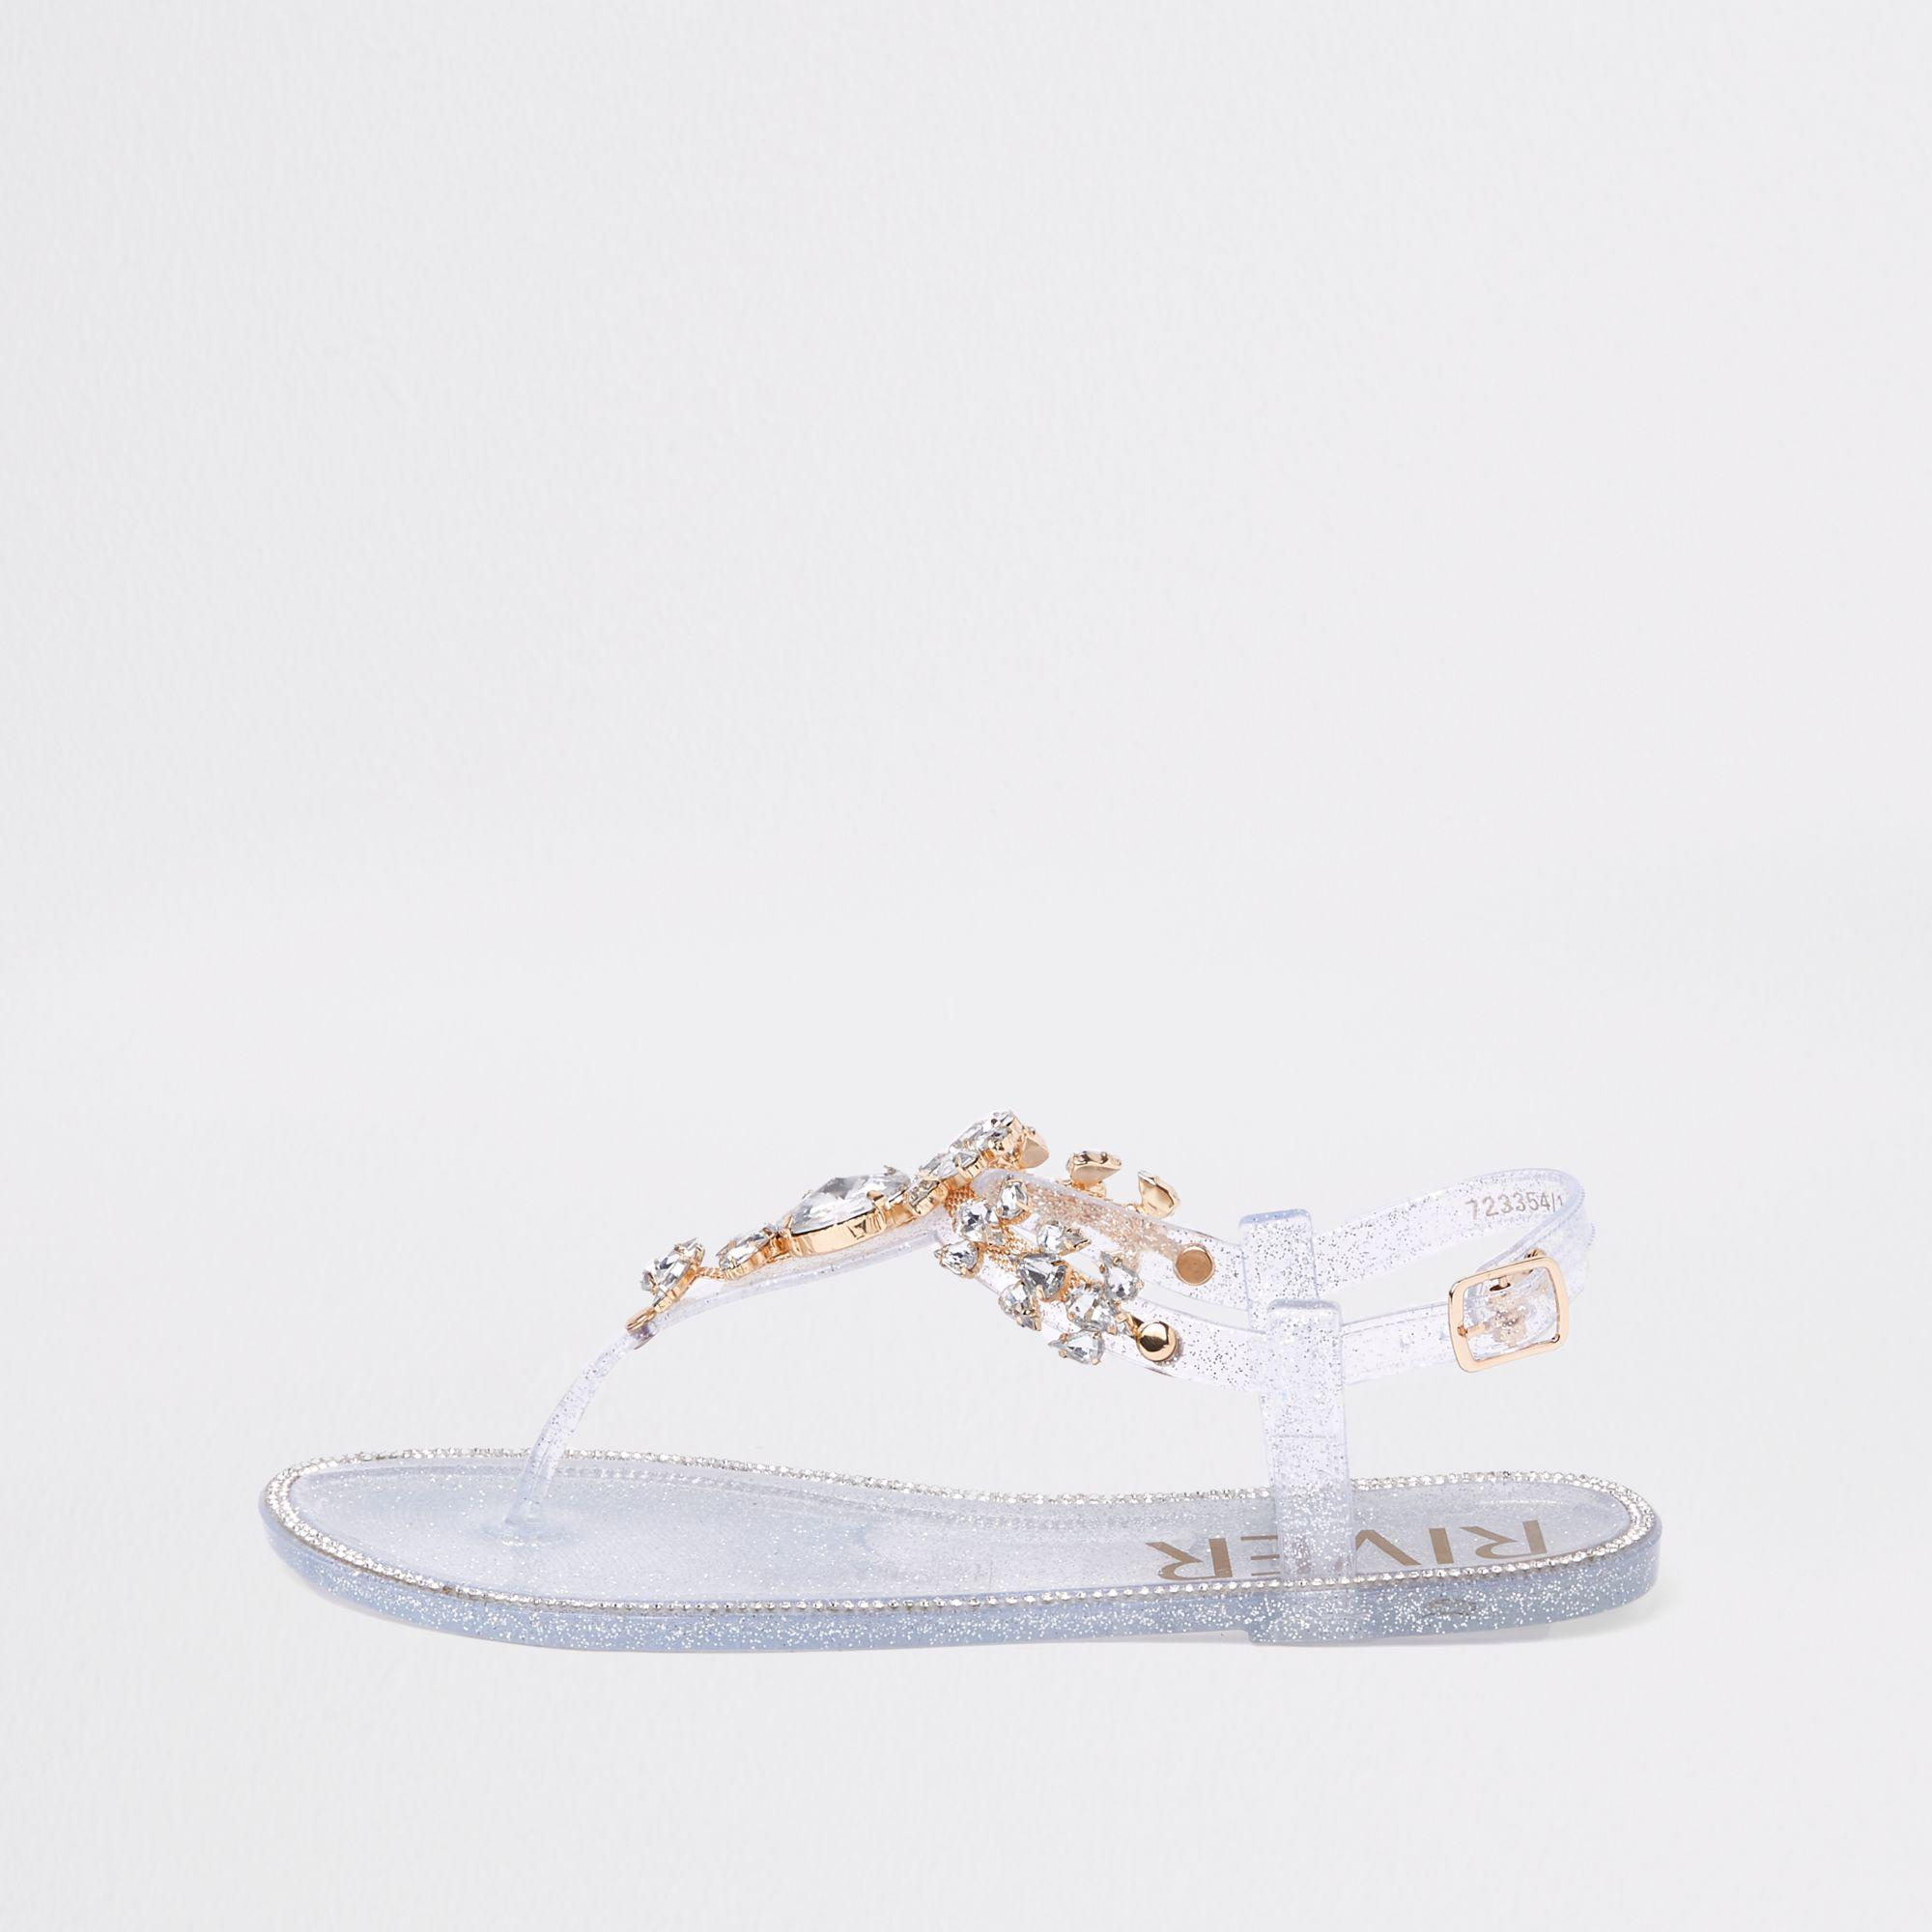 88a7d7a8191 River Island Silver Gem Embellished Jelly Sandals in Metallic - Lyst